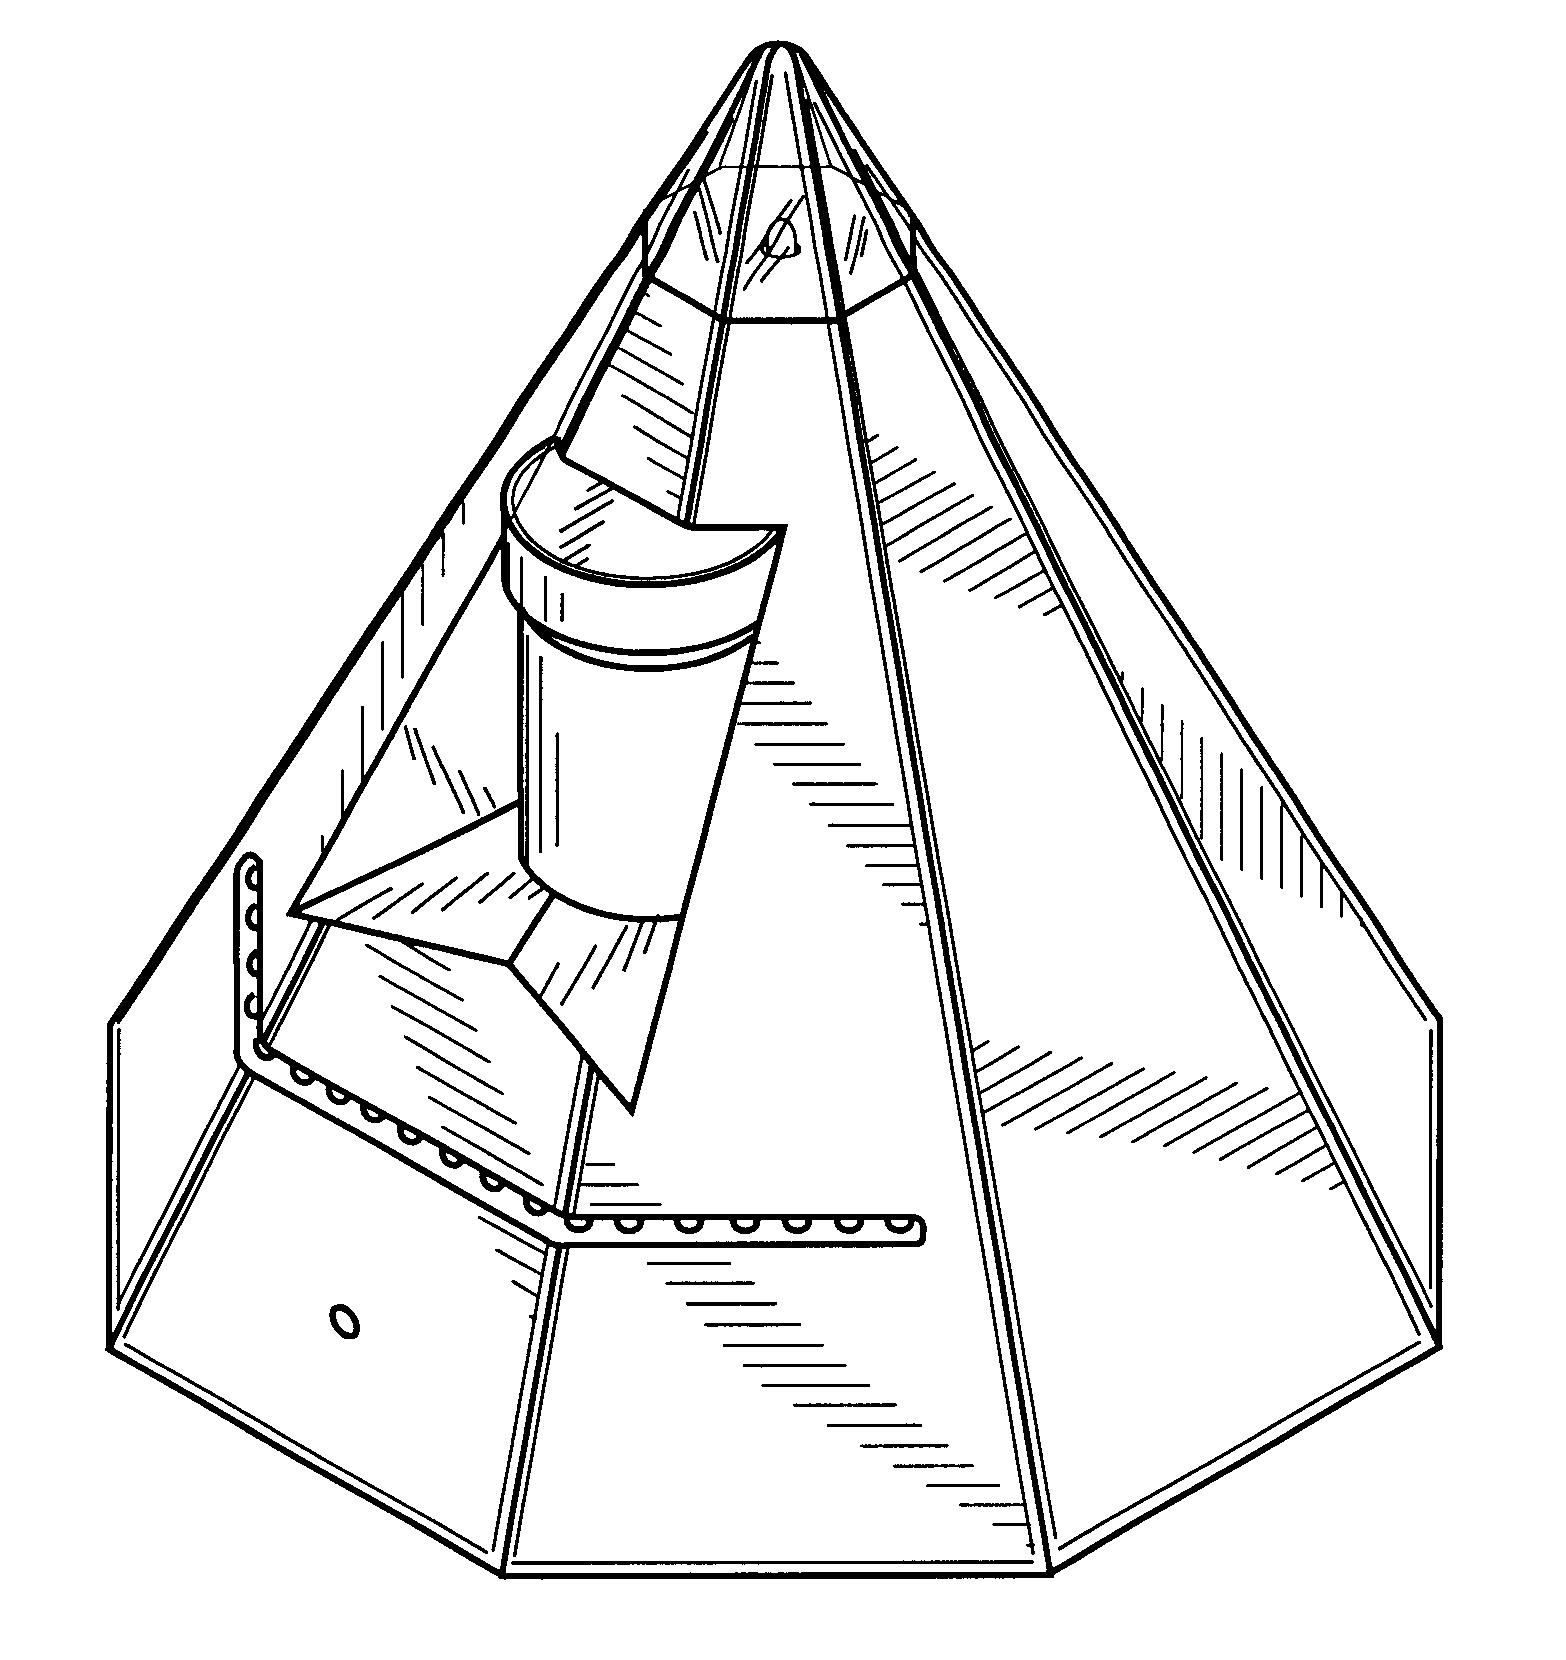 Drawn pyramid sided Unit Eight Drawing Patent sided